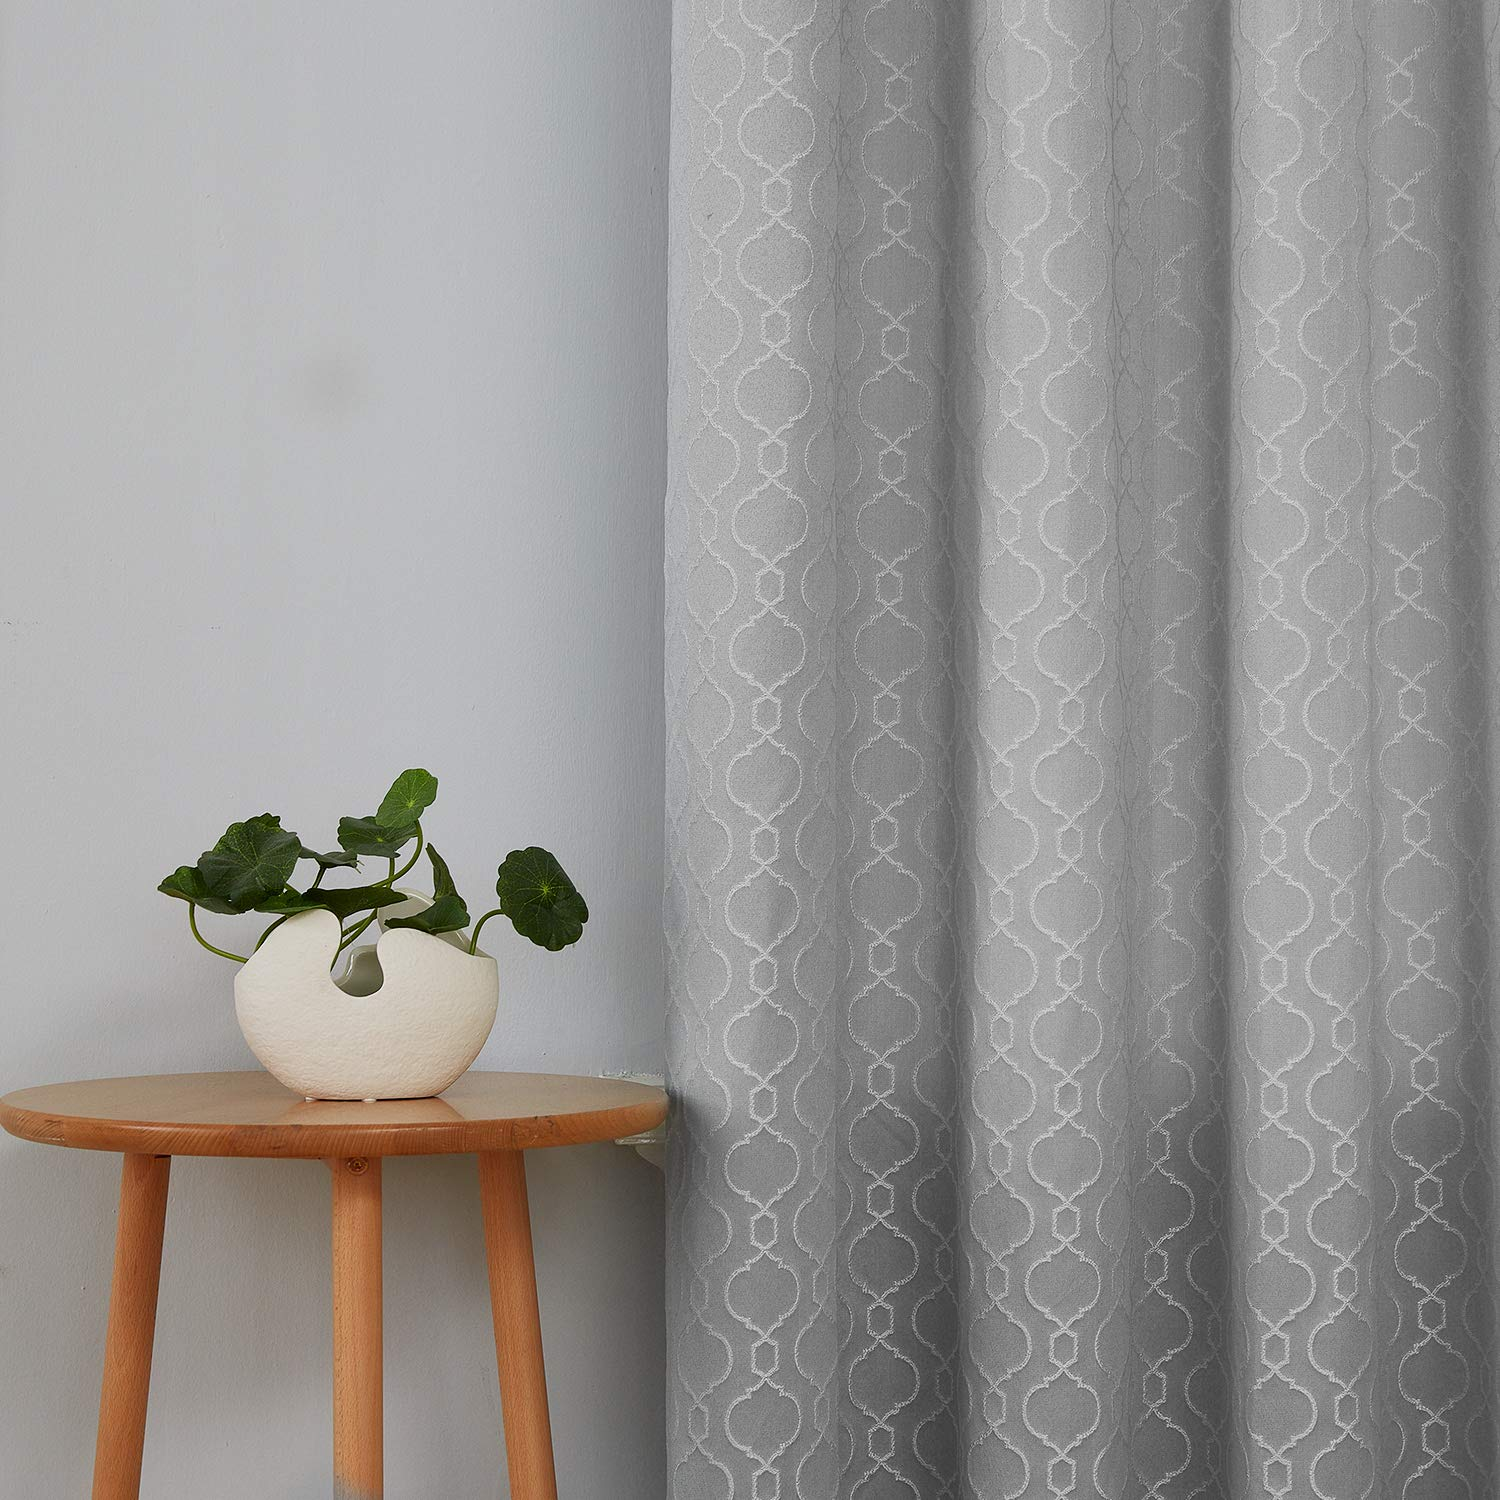 Details about Deconovo Silver Grey Bedroom Curtains Room Darkening Jacquard  Moroccan Curtains